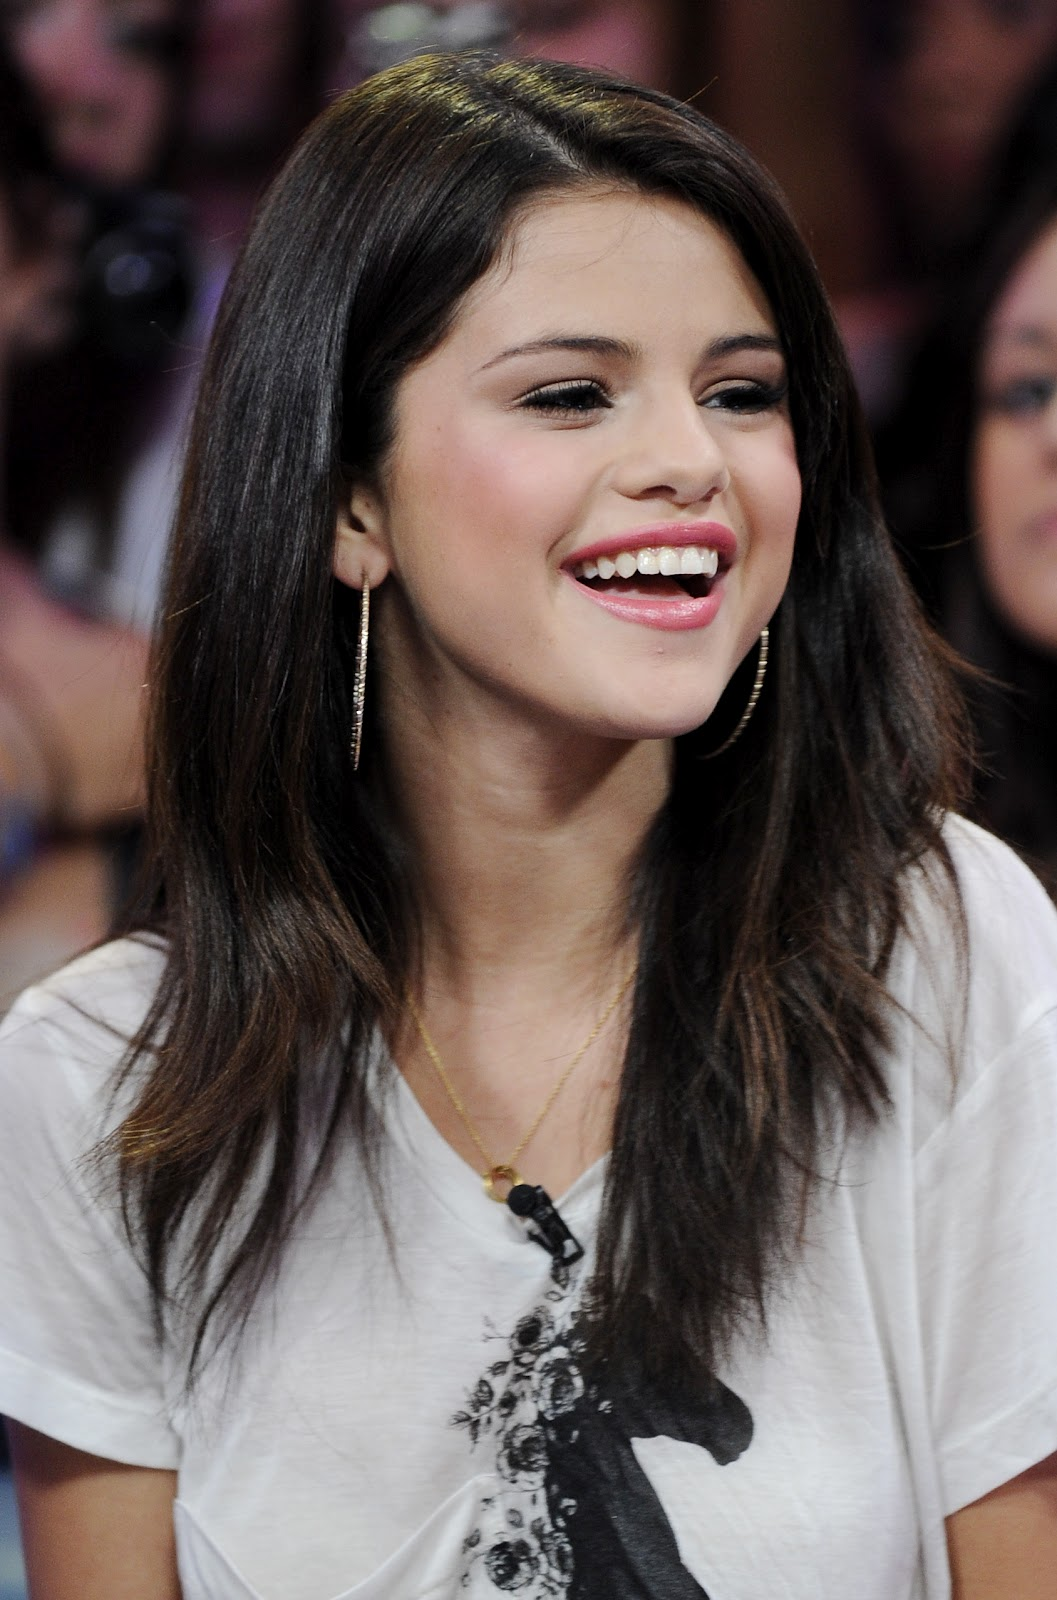 selena gomez wallpapers and pictures 2012: selena gomez beautiful